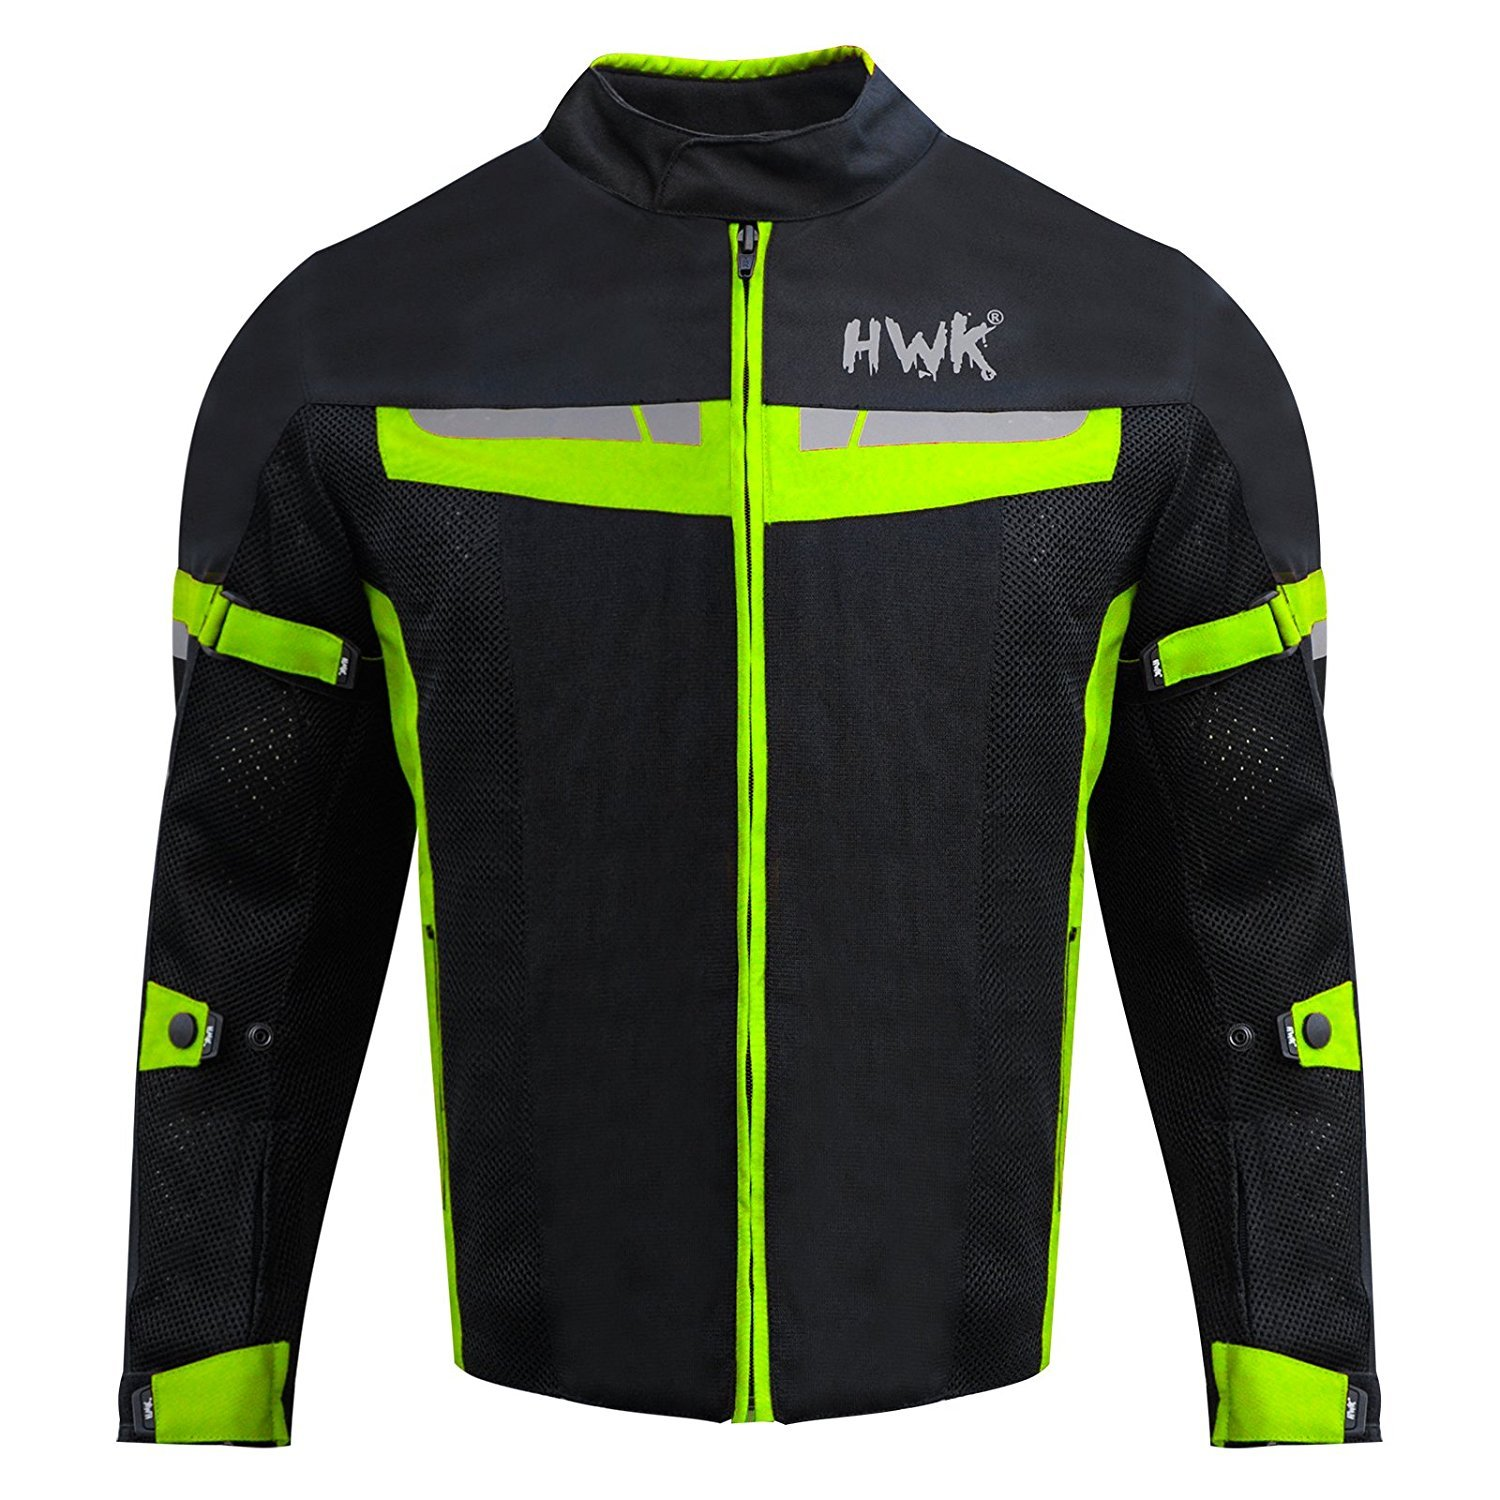 HWK Motorsports Direct Mesh Motorcycle Jacket Mesh Riding Jacket Coat Motorbike Jacket Biker Air Ventilation Cordura CE Armoured 100% Breathable 1 YEAR WARRANTY!! (XX-Large, Green)